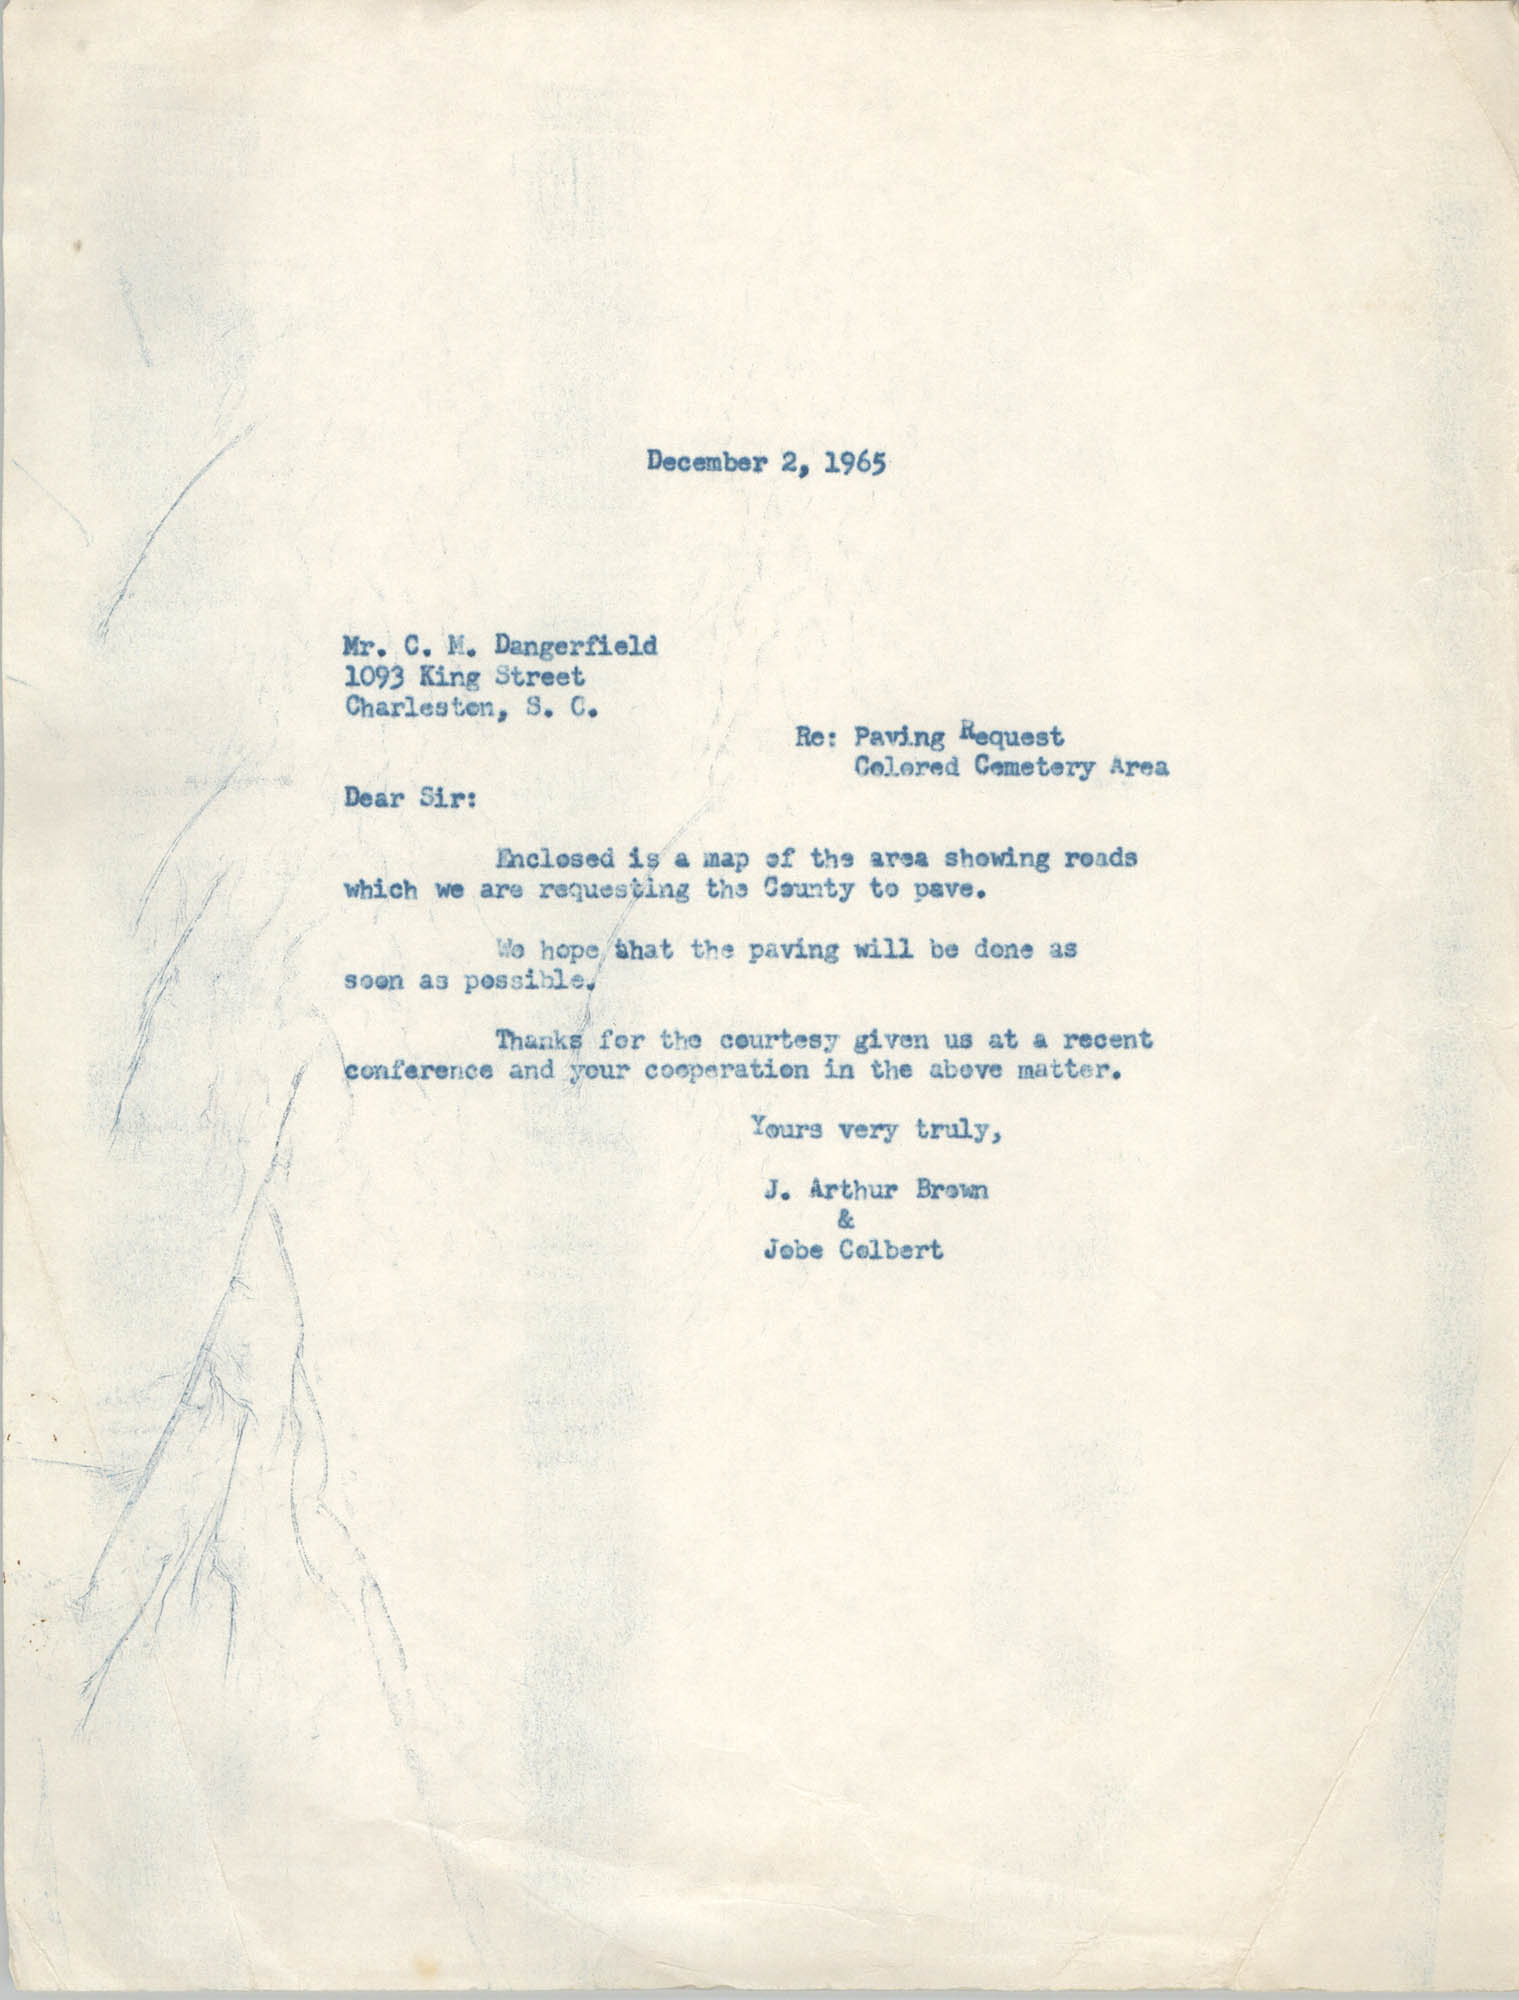 Letter from J. Arthur Brown and Jobe Colbert